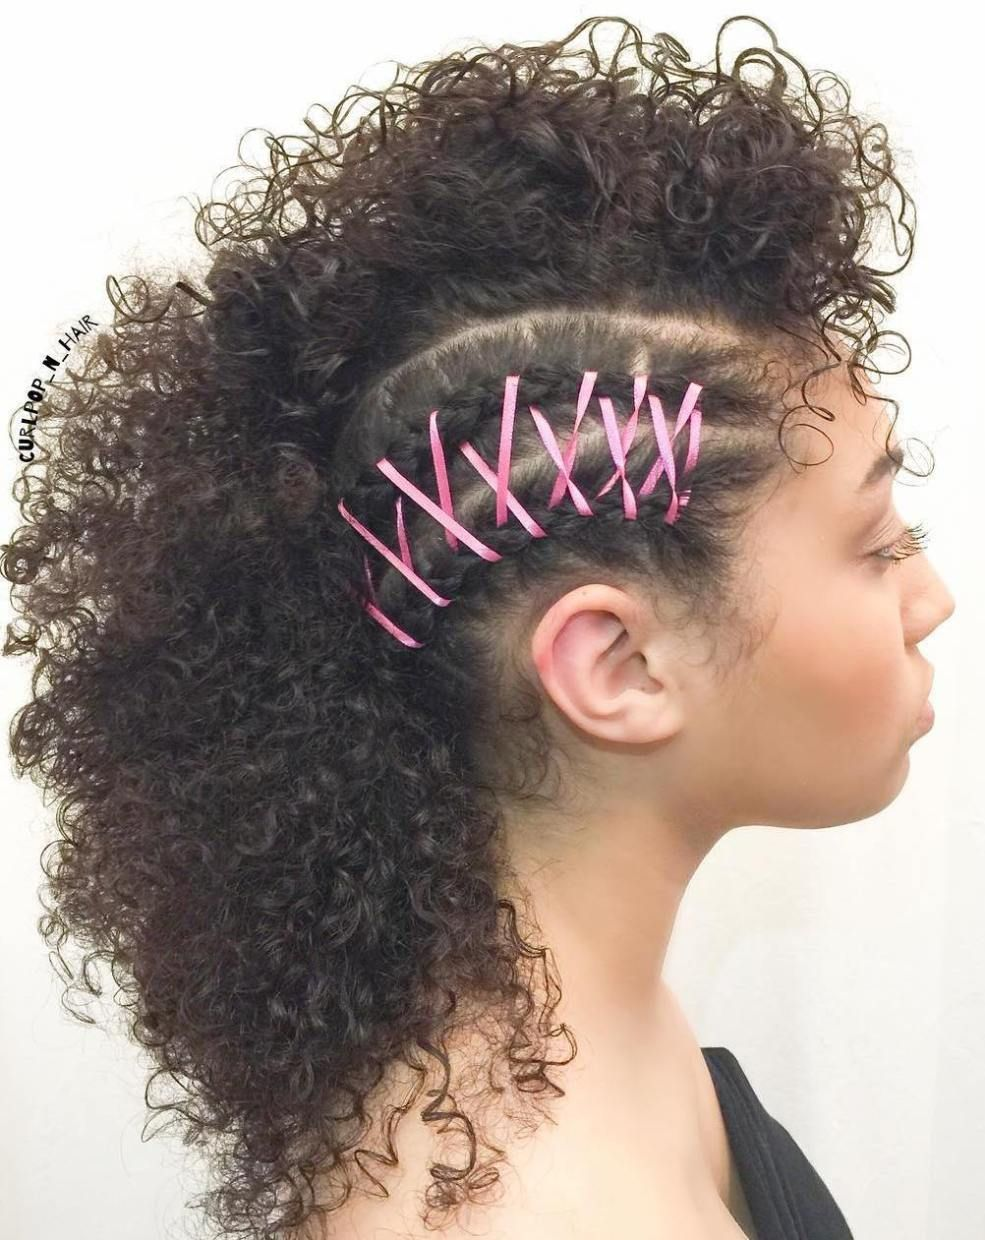 55 styles and cuts for naturally curly hair in 2017 | curly mohawk